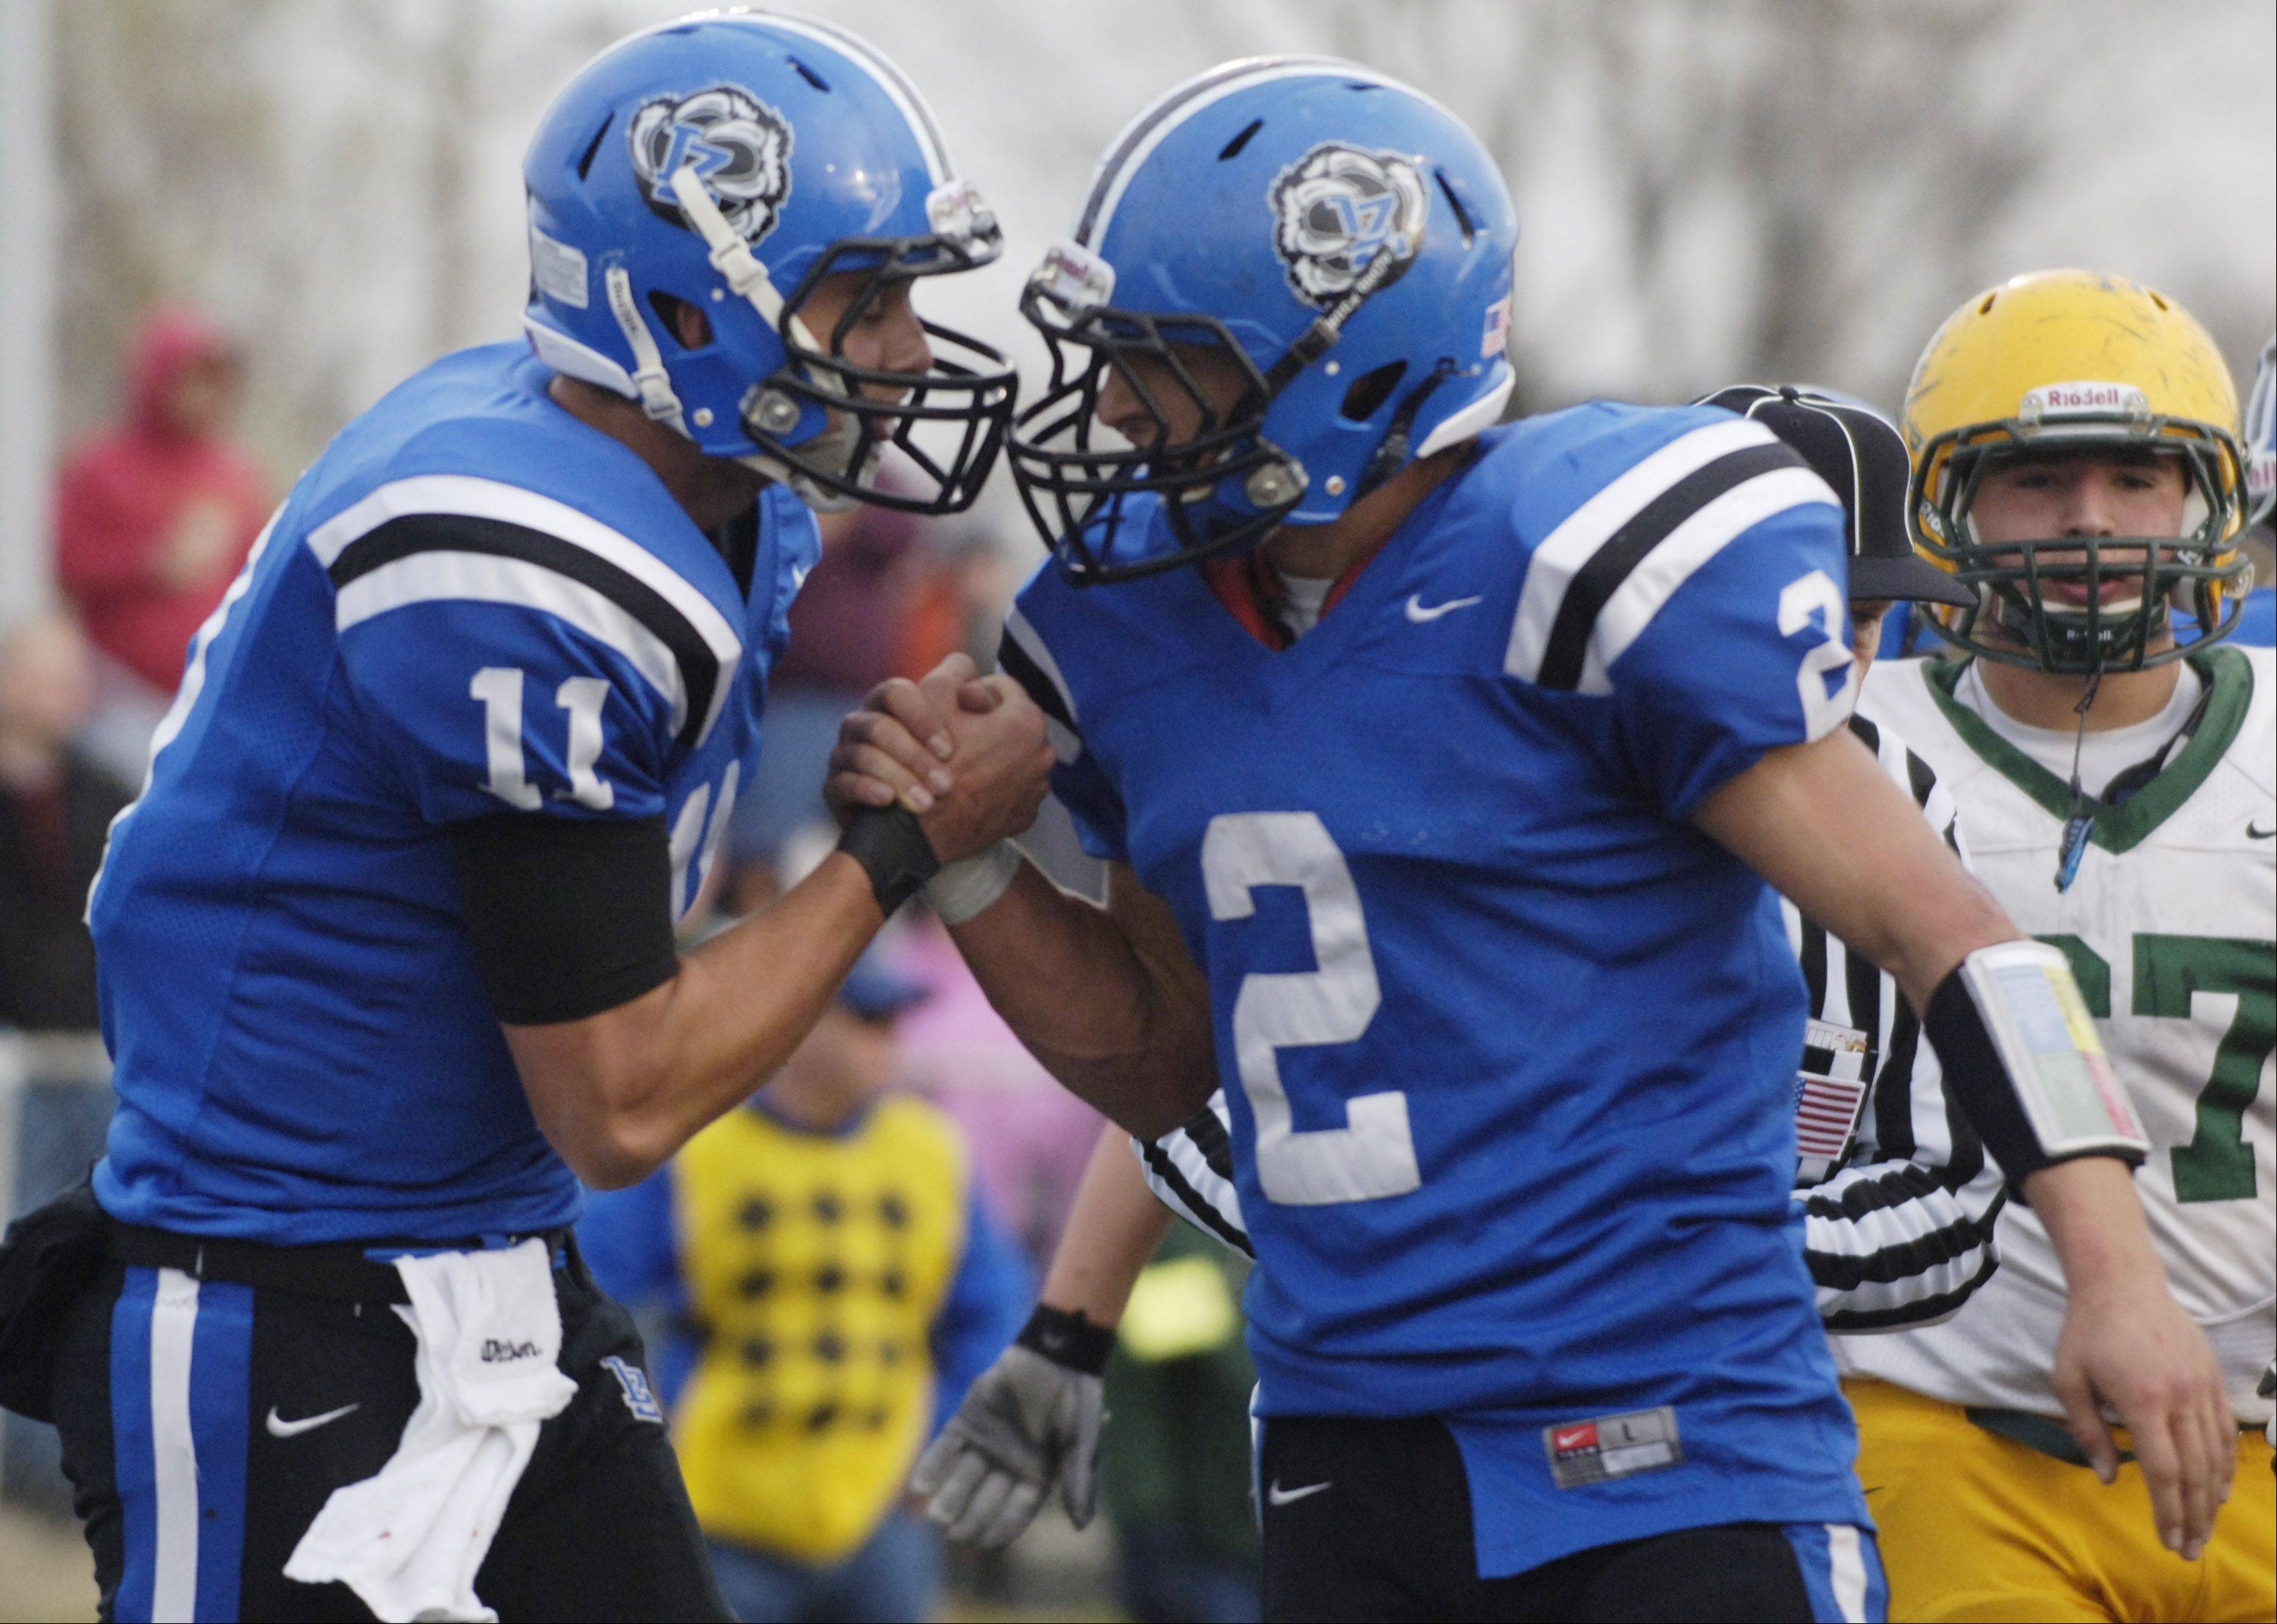 Lake Zurich's Steven Kuhn, left, celebrates his fourth-quarter touchdown with teammate Mike Shield during Saturday's 17-10 Class 7A football win over Elk Grove.